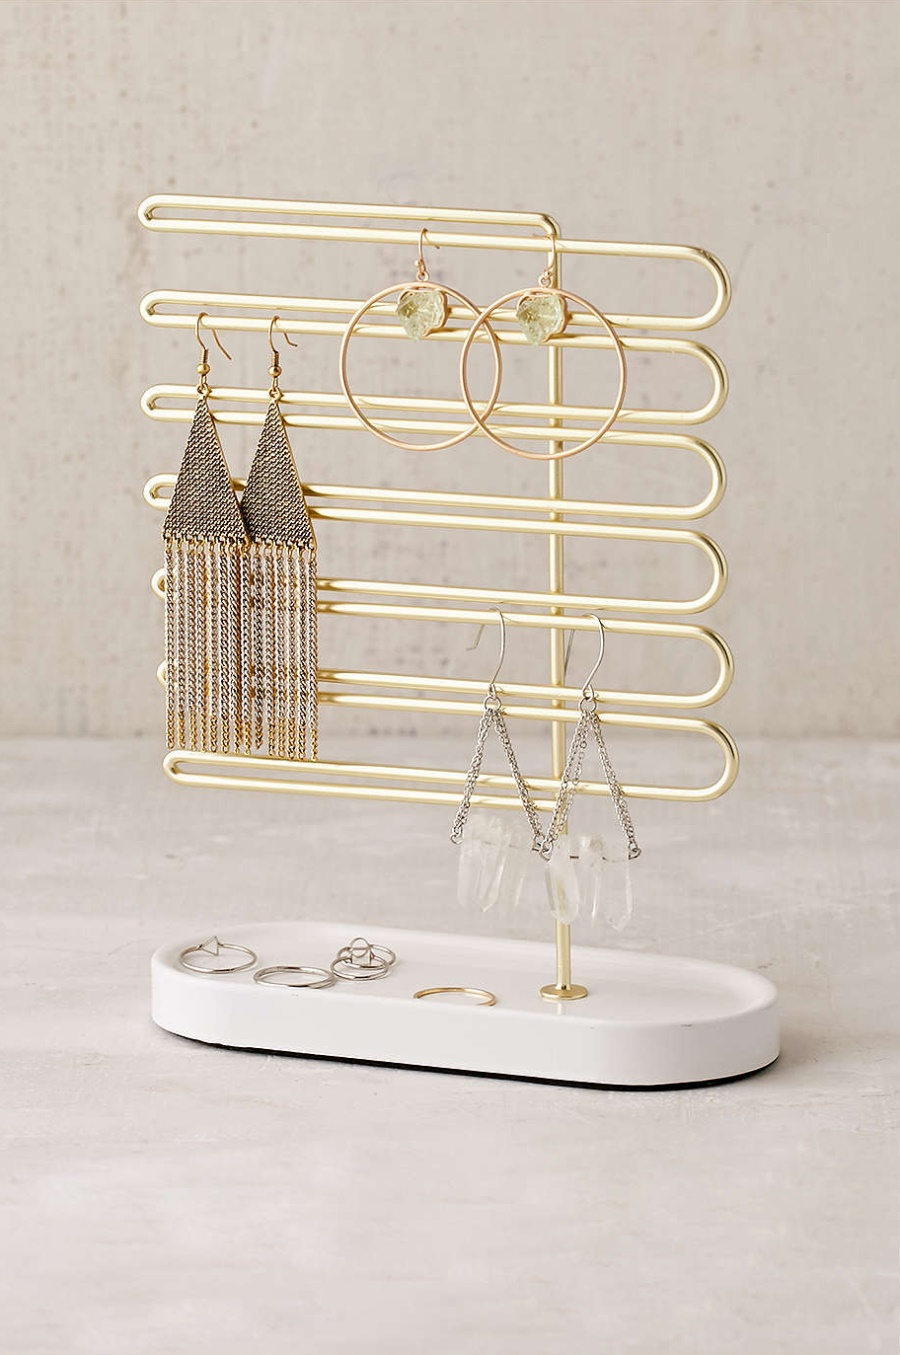 Ceramic and metal jewelry stand from Urban Outfitters